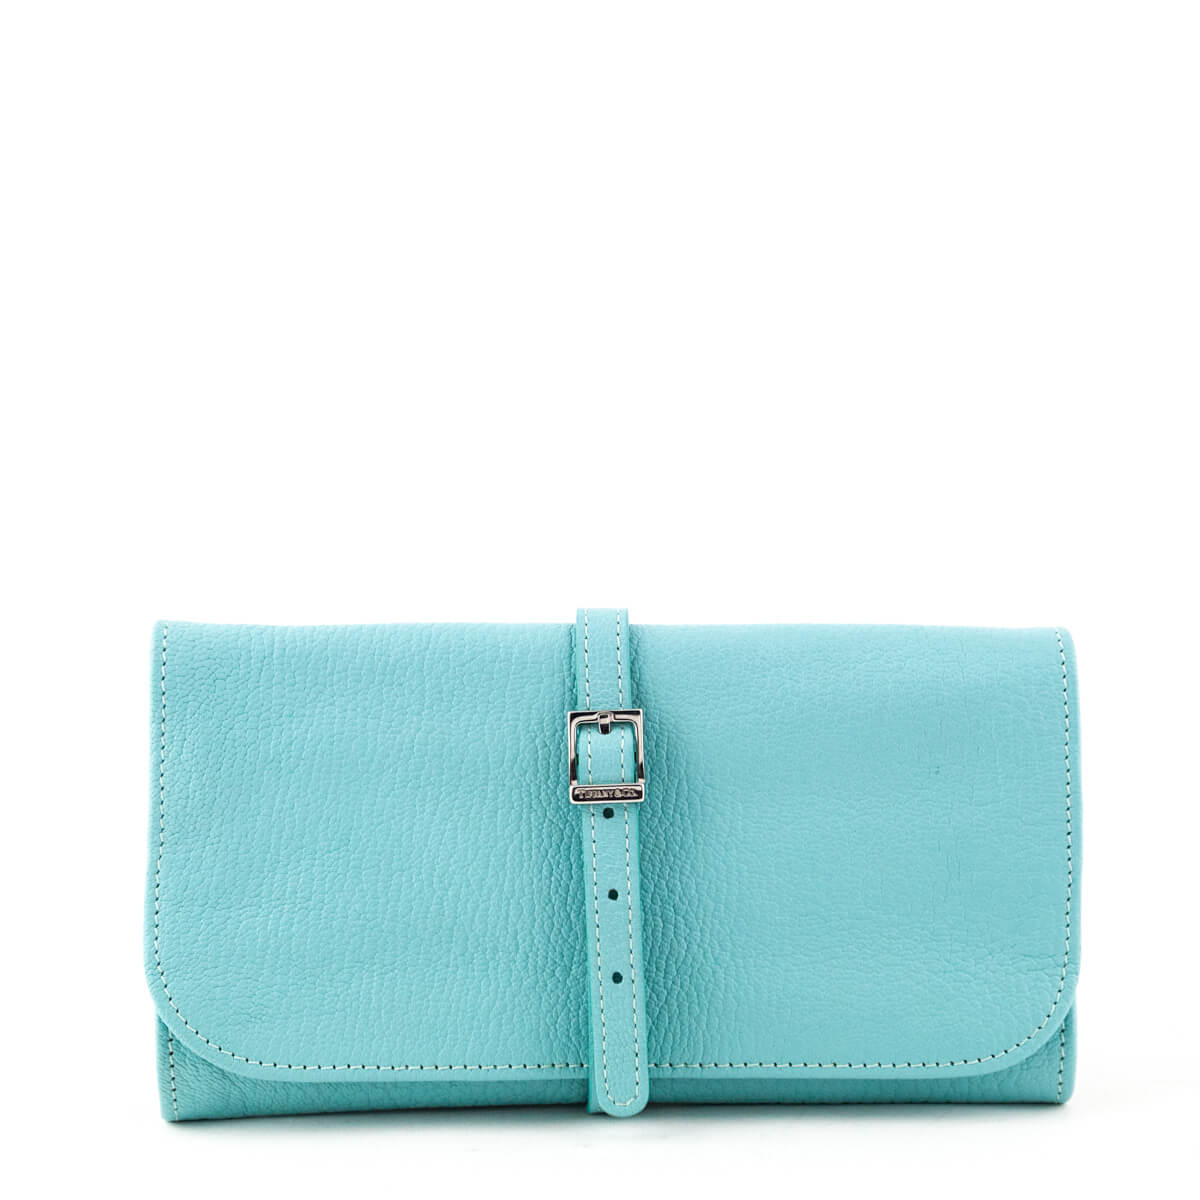 9af641fc16e Tiffany   Co. Turquoise Travel Jewelry Roll - LOVE that BAG - Preowned  Authentic Designer ...